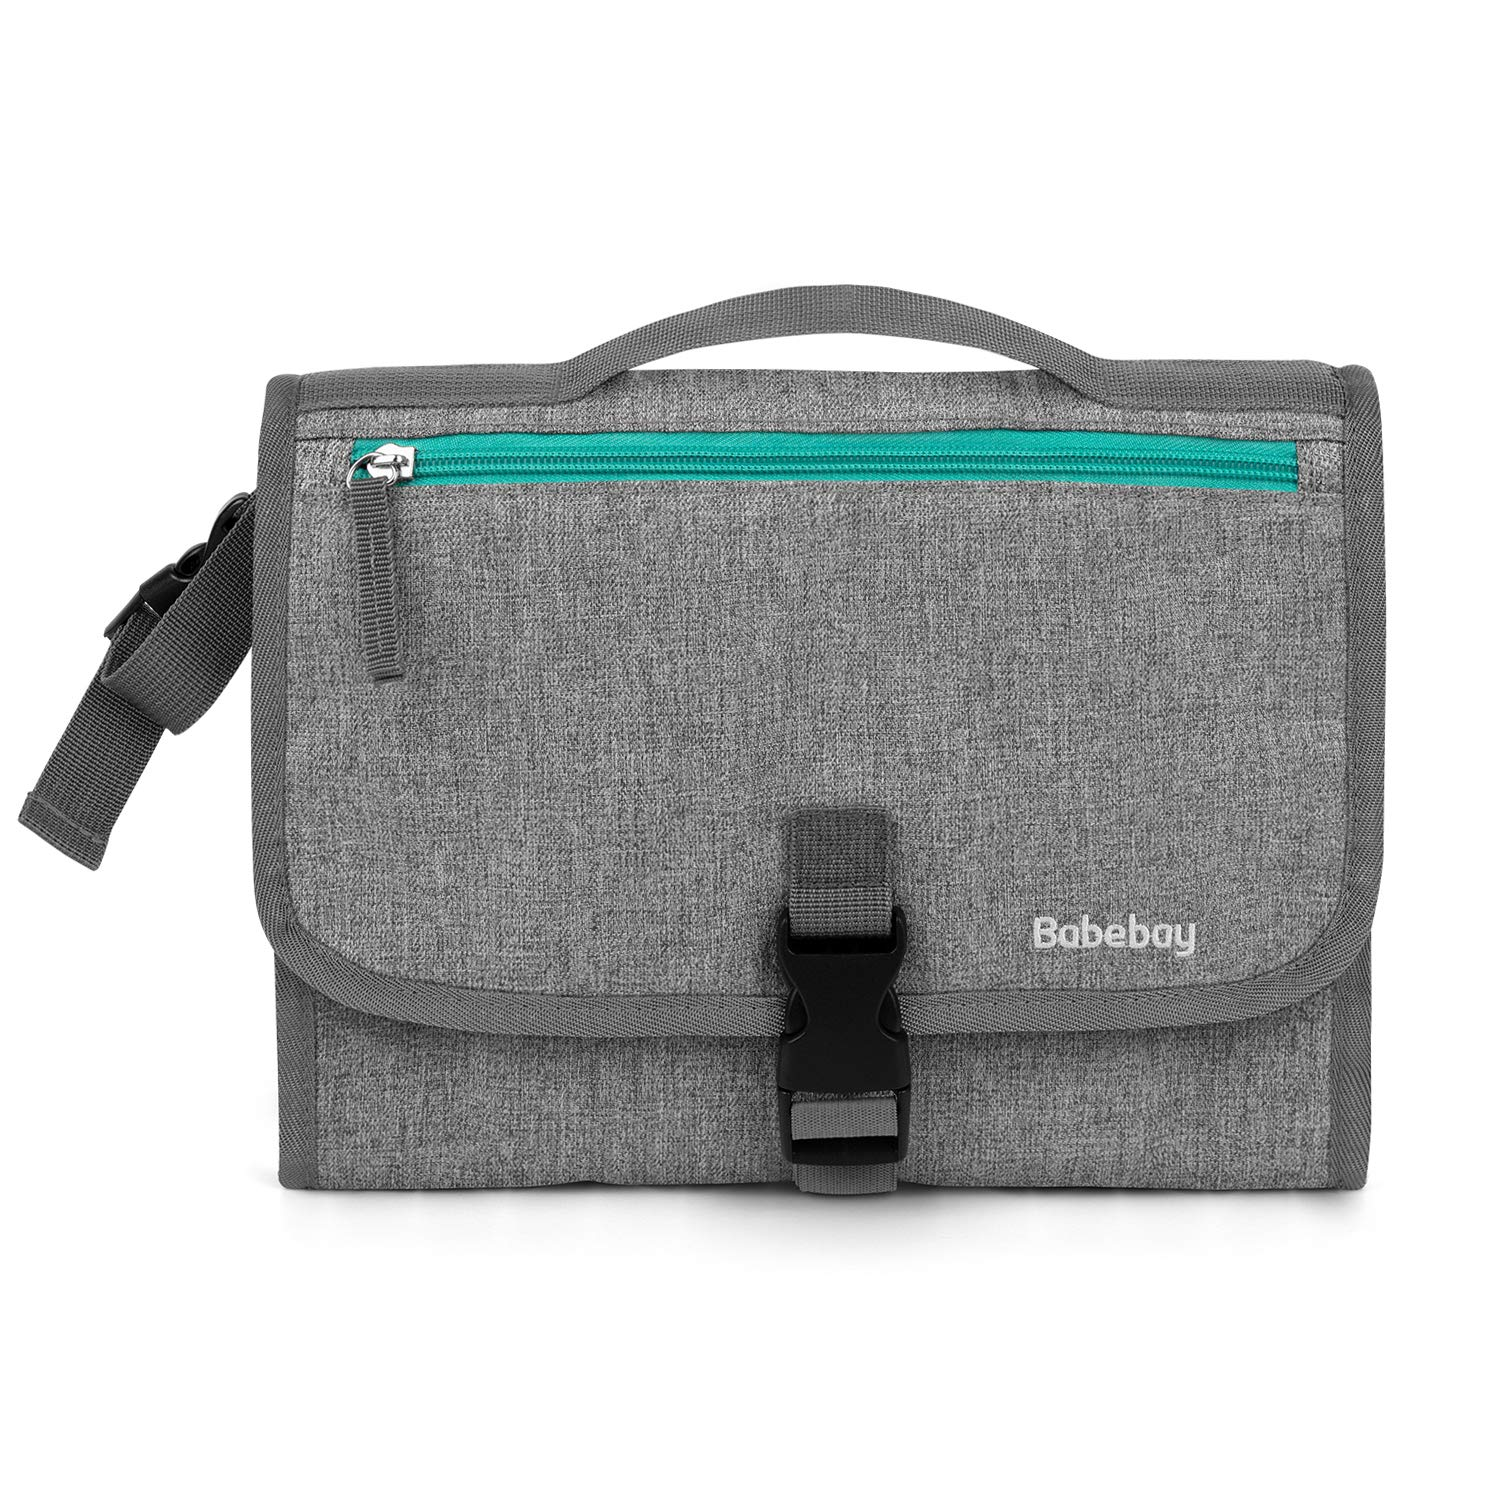 Babebay Portable Diaper Changing Pad, Portable Changing Pad with Built-in Head Cushion - Baby Changing Pad with Wipes Pocket, Waterproof Travel Changing Station Kit for Newborn Boy & Girl